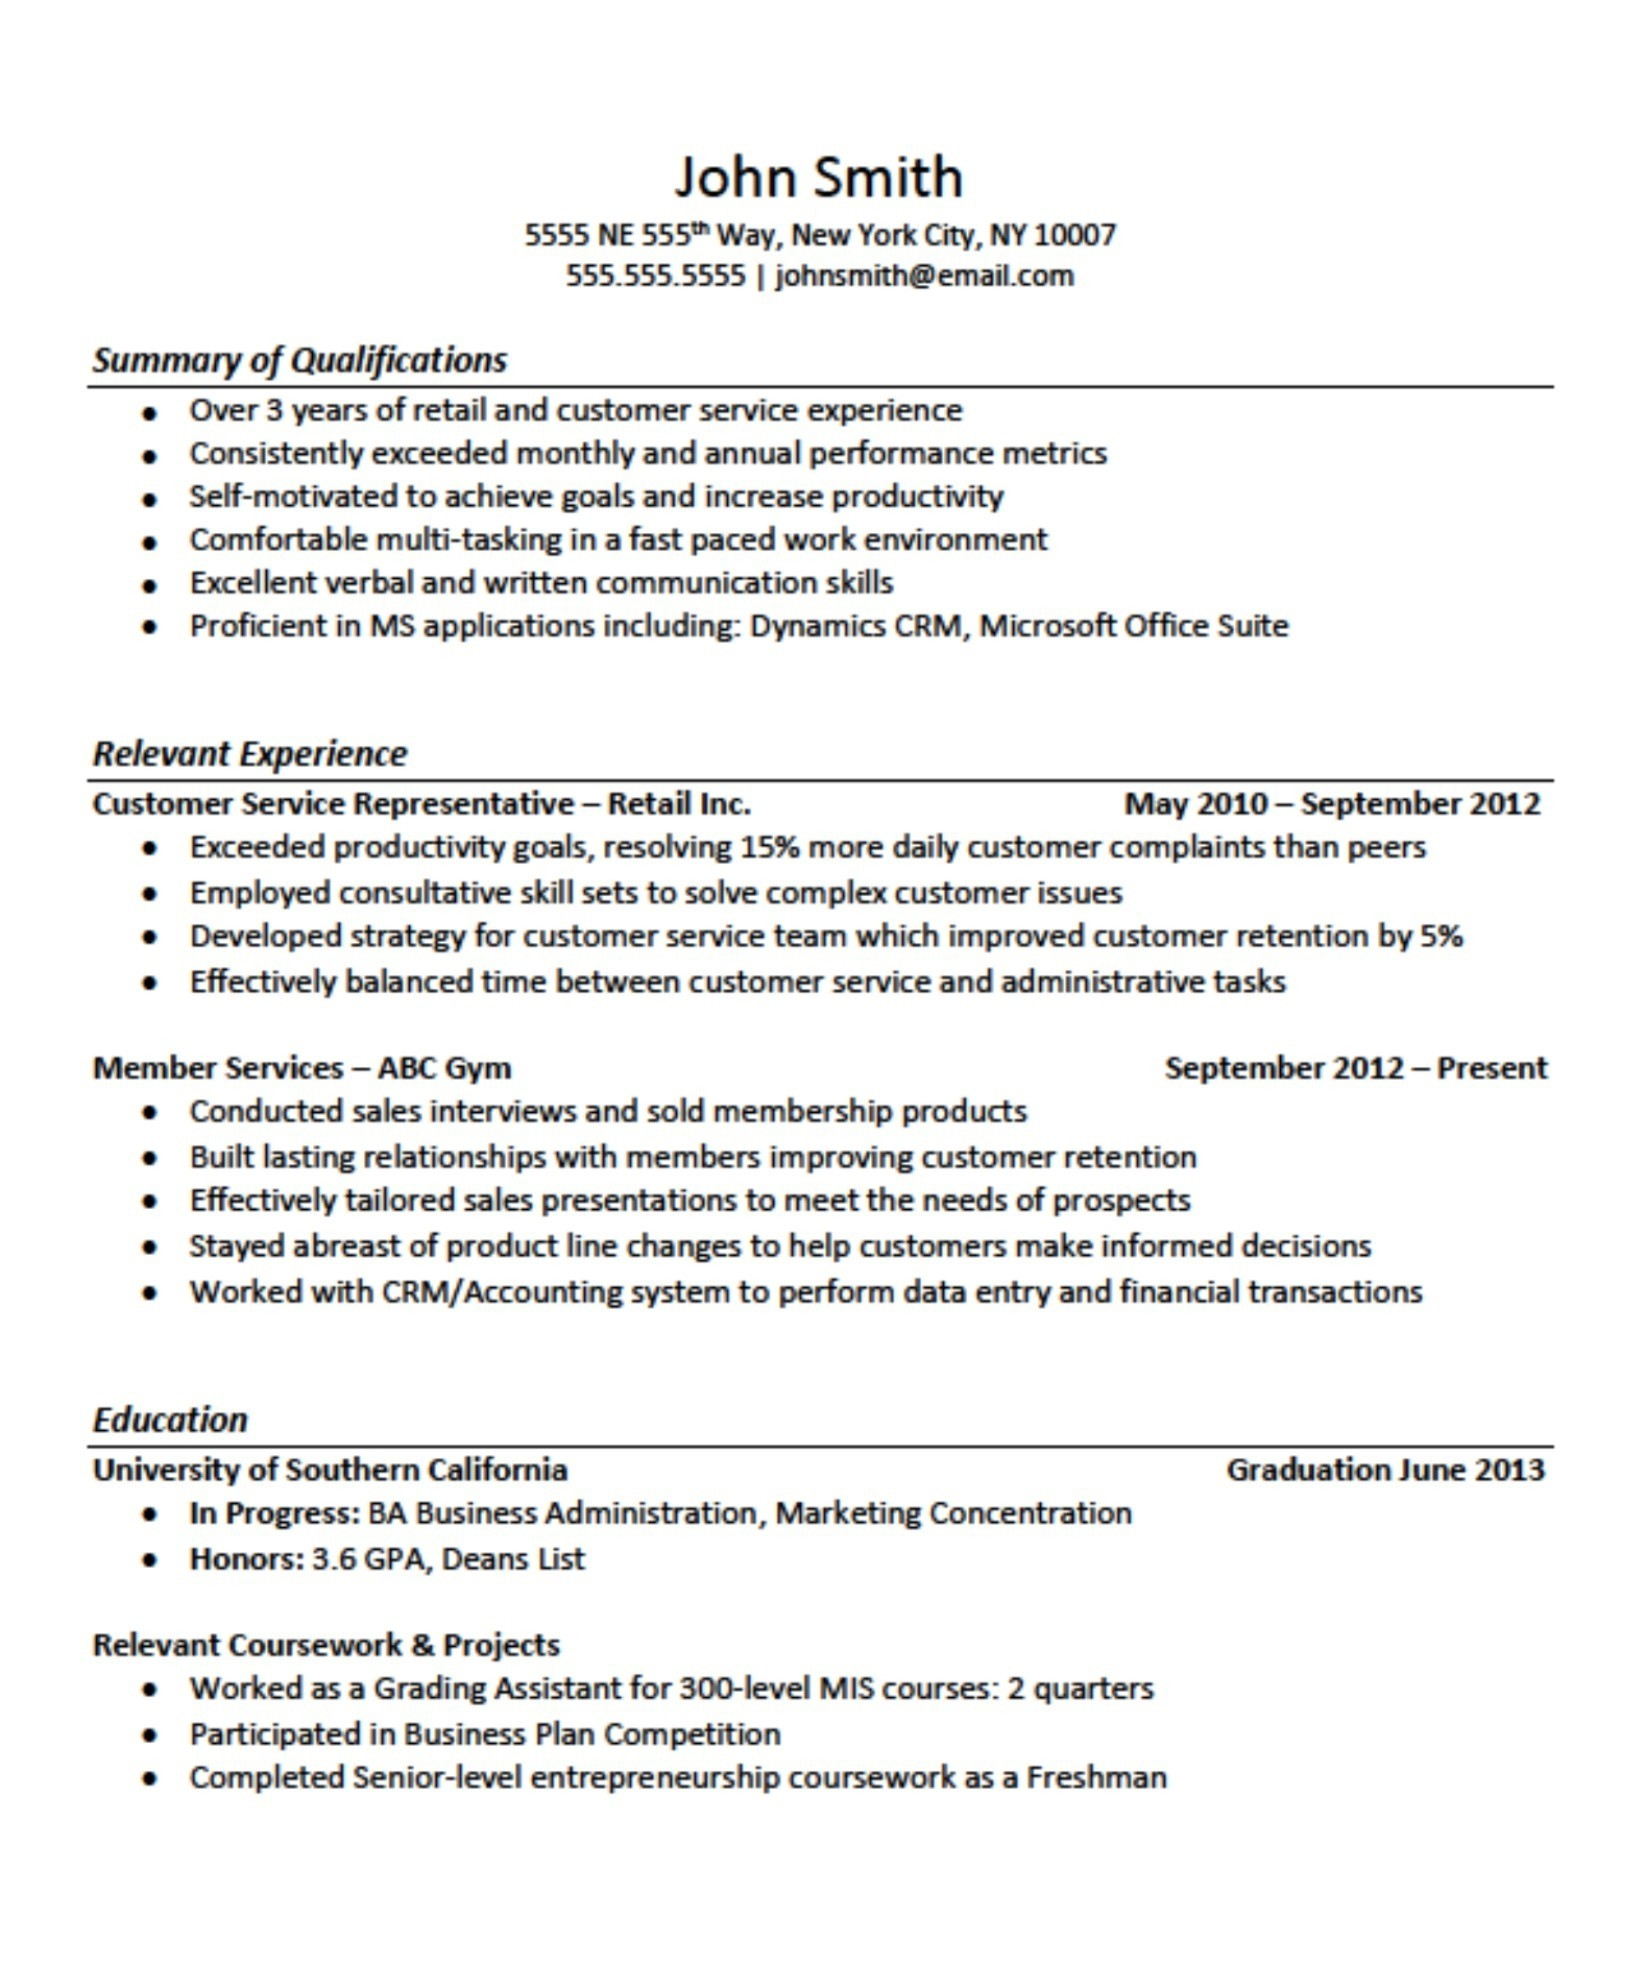 Summary for Resume with No Experience - Resume for No Experience Luxury New Resume Tutor Luxury Writing Your